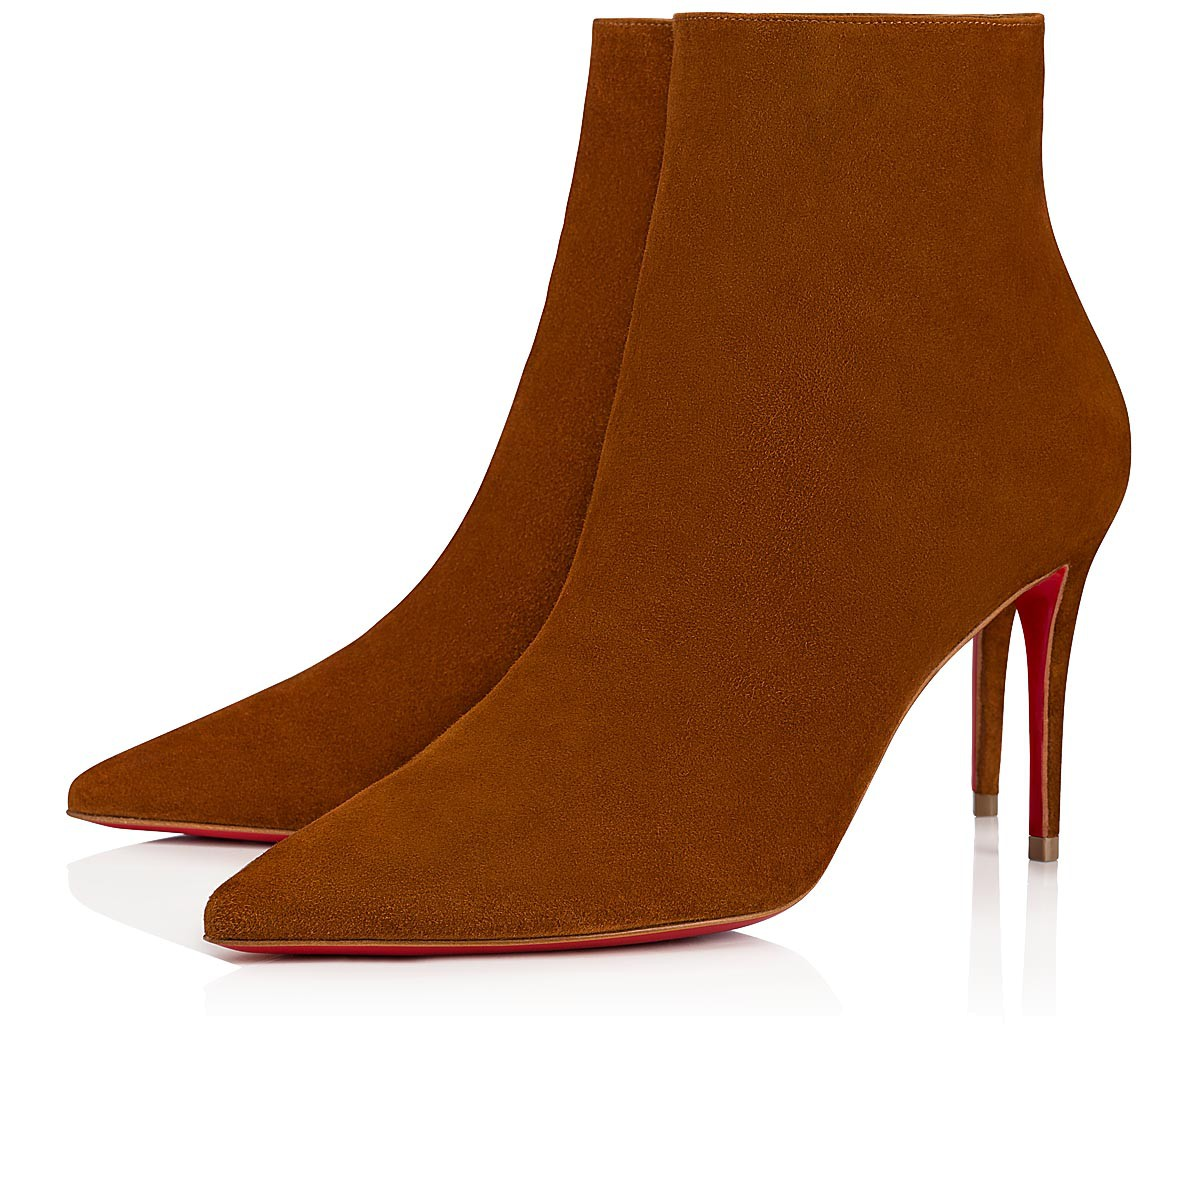 Shoes - So Kate Booty - Christian Louboutin